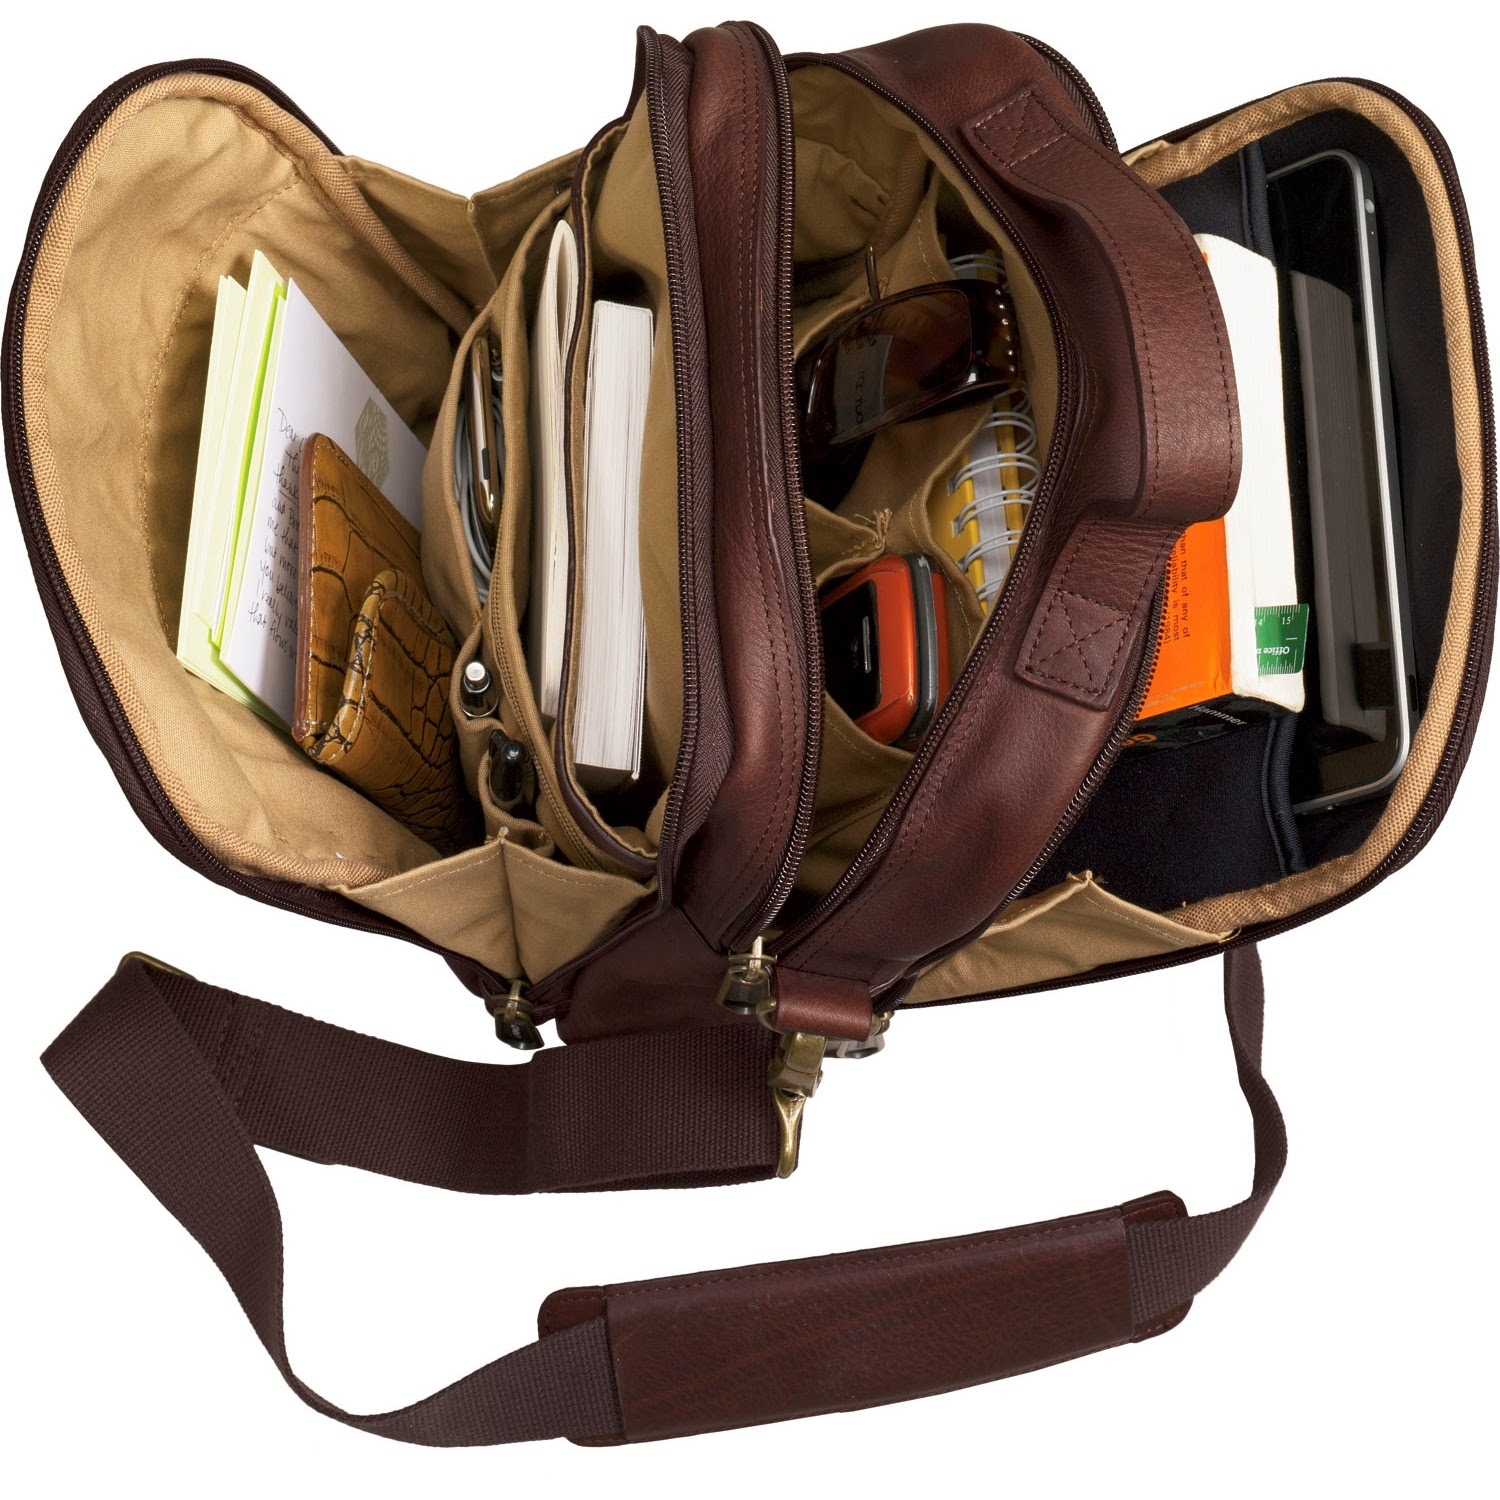 Leather Organizer Bag Leather Travel Bag is